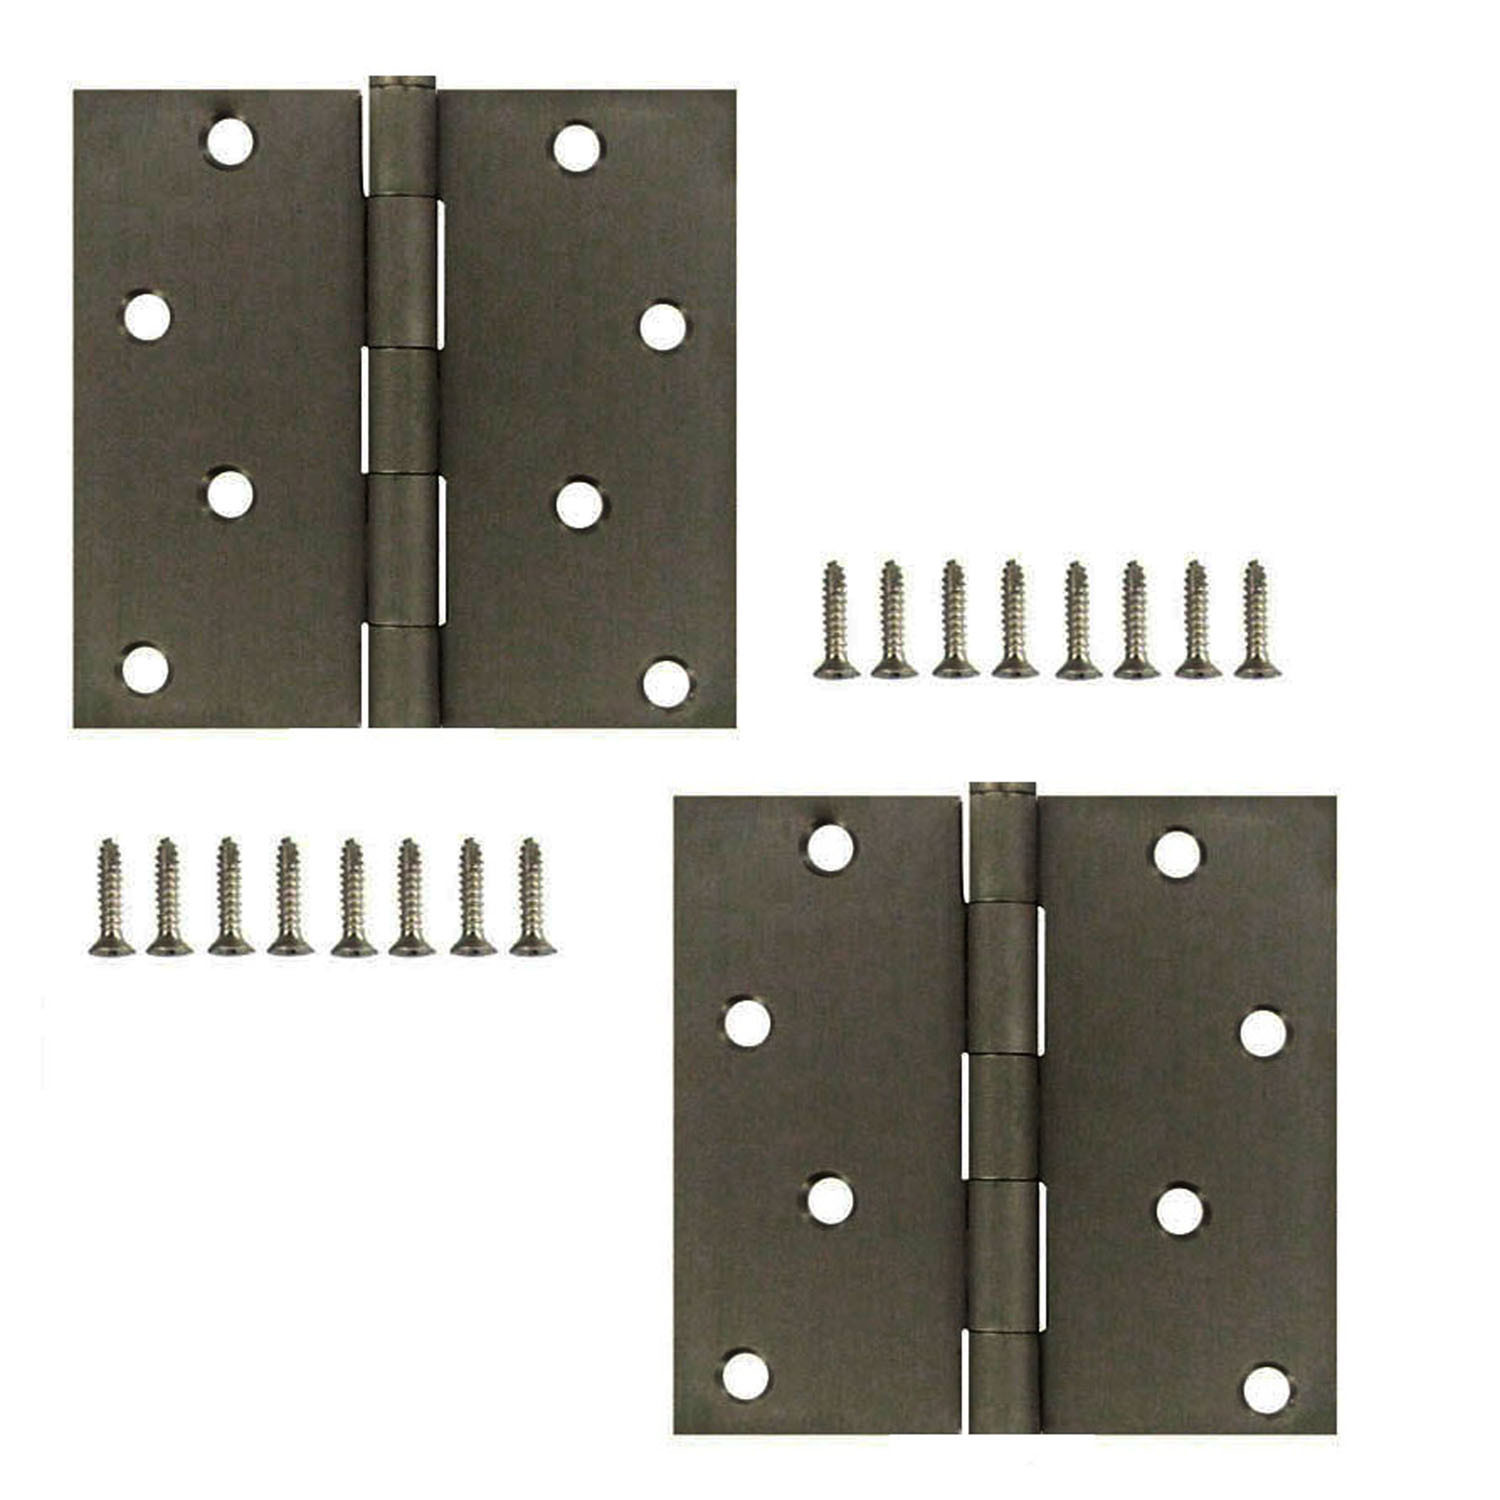 National Hardware S821-231 S808-477 Stanley 4 Inch Square Corner Door  Hinges Antique Pewter 2 Pack